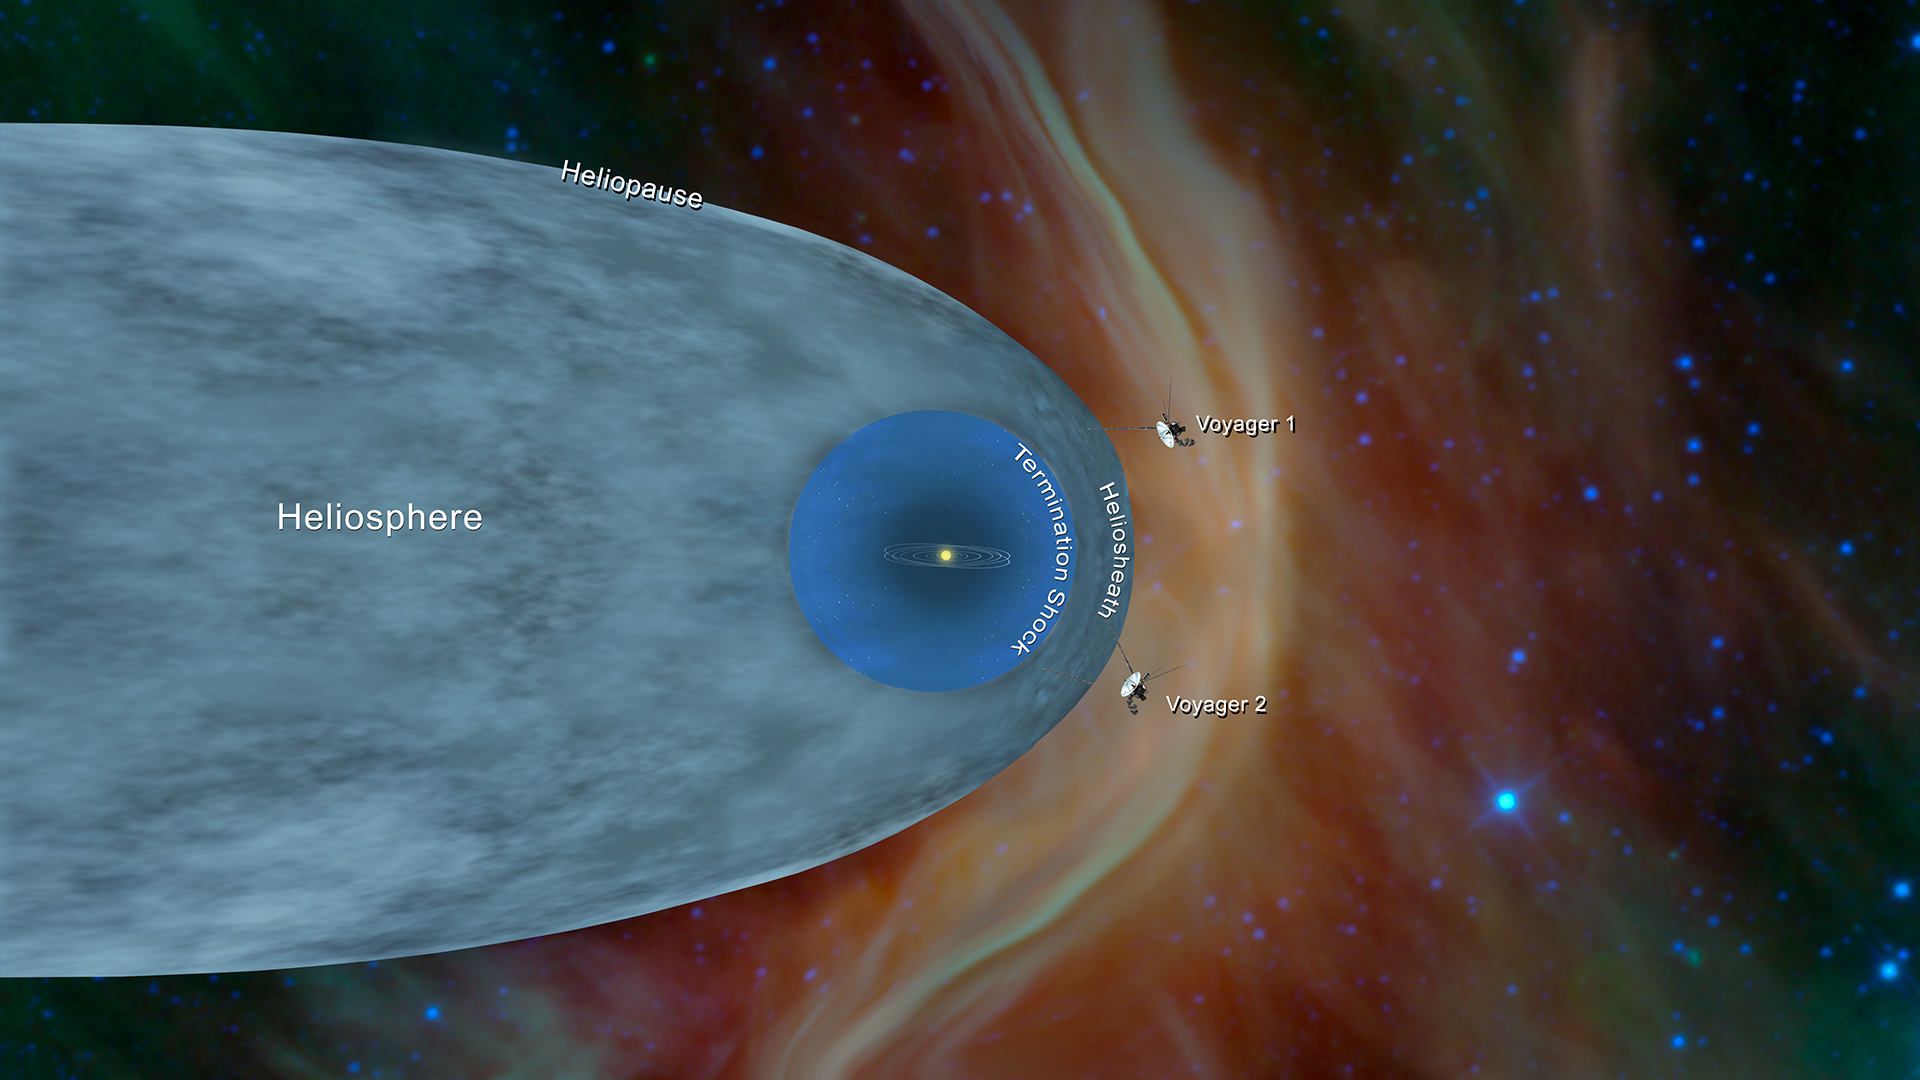 Heliosphere, Voyagers 1 and 2